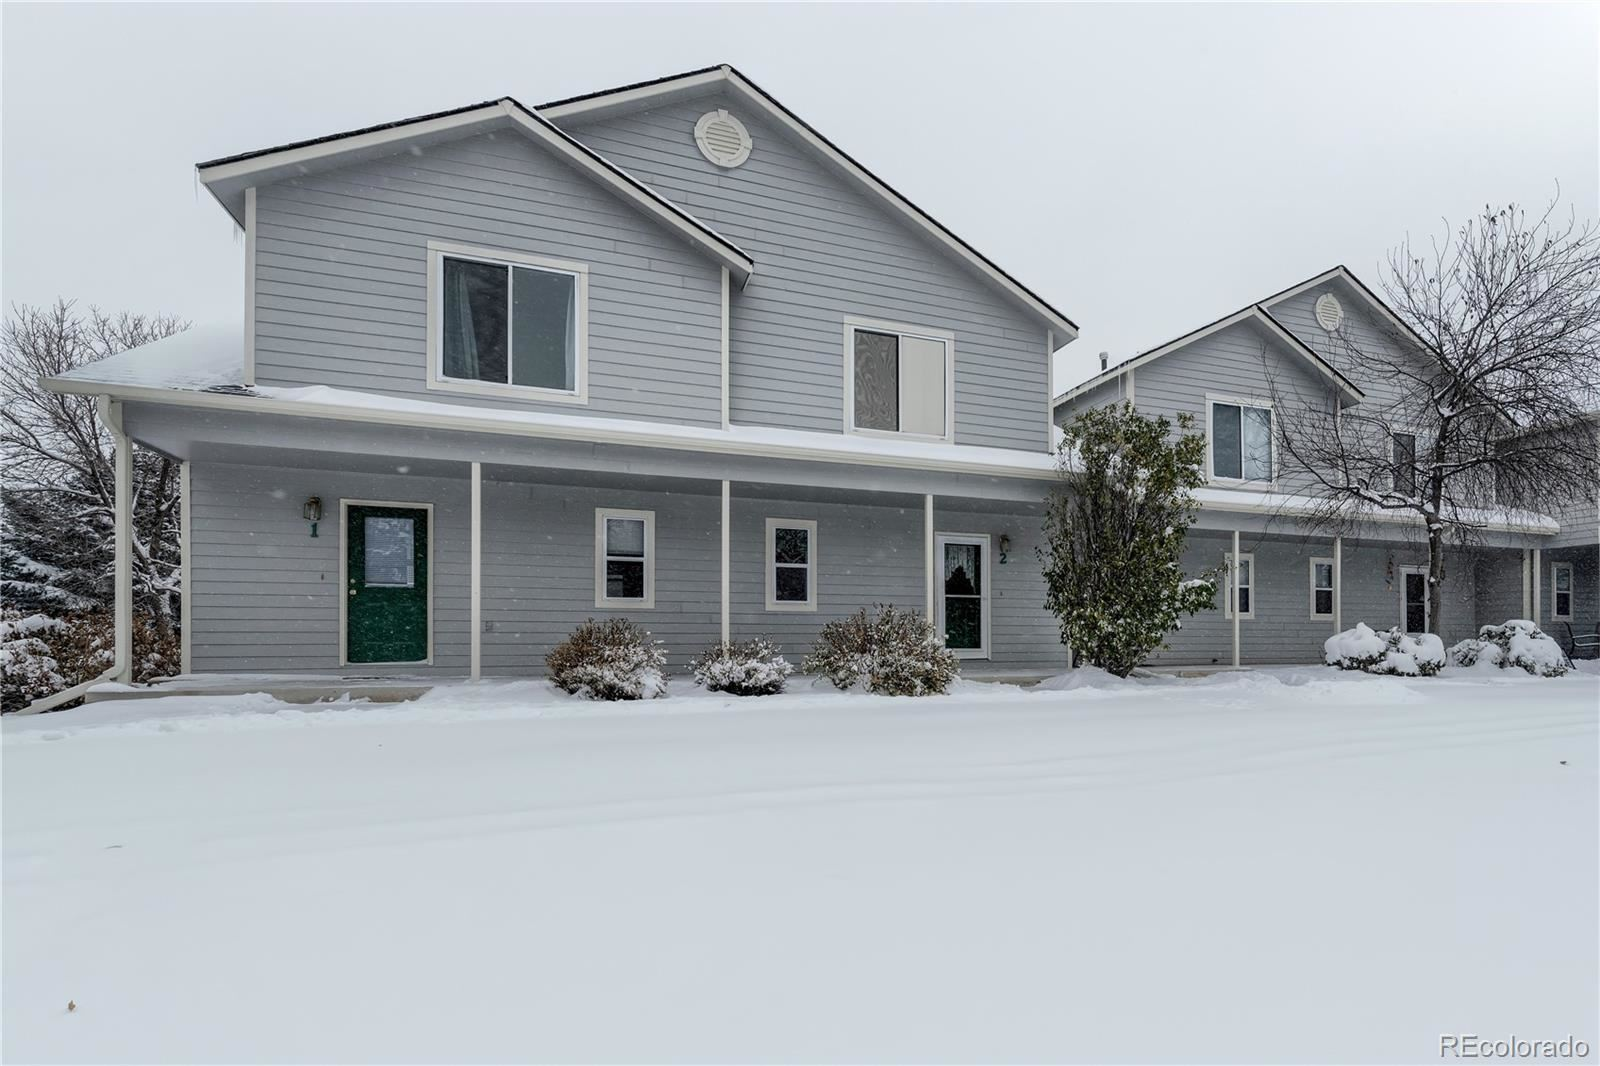 2950  Neil Drive  2 #2, Fort Collins, CO 80526 - #: 1551292